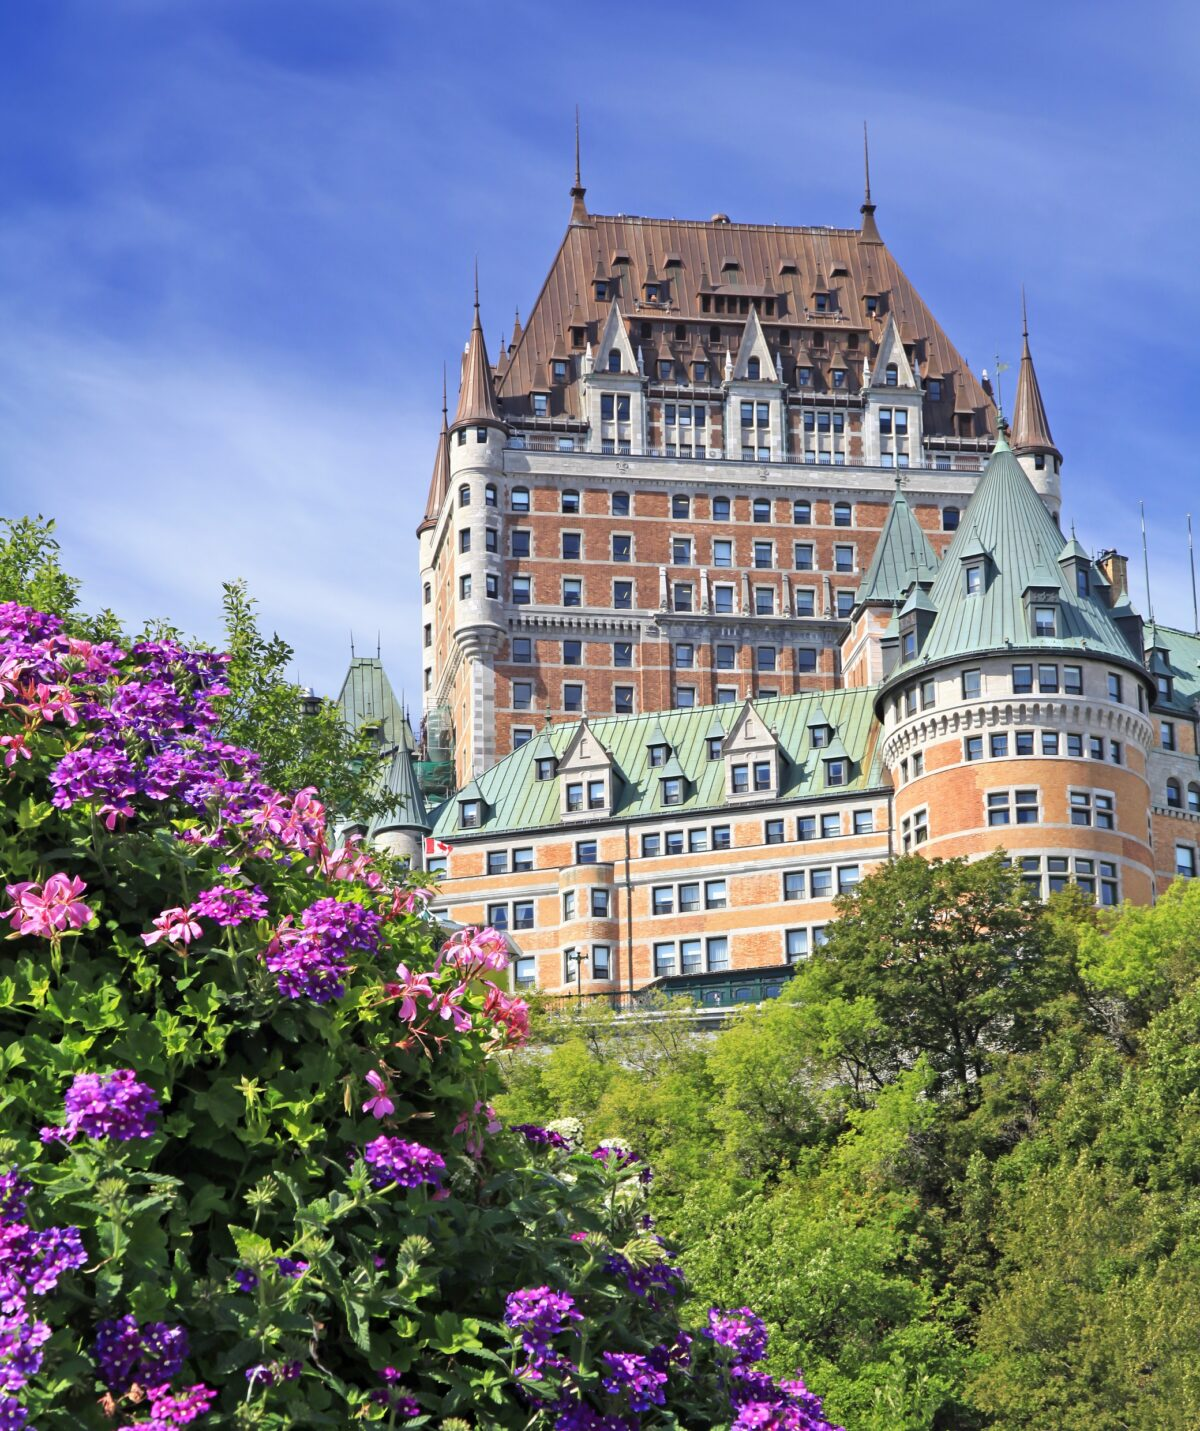 Chateau Frontenac with violet flowers